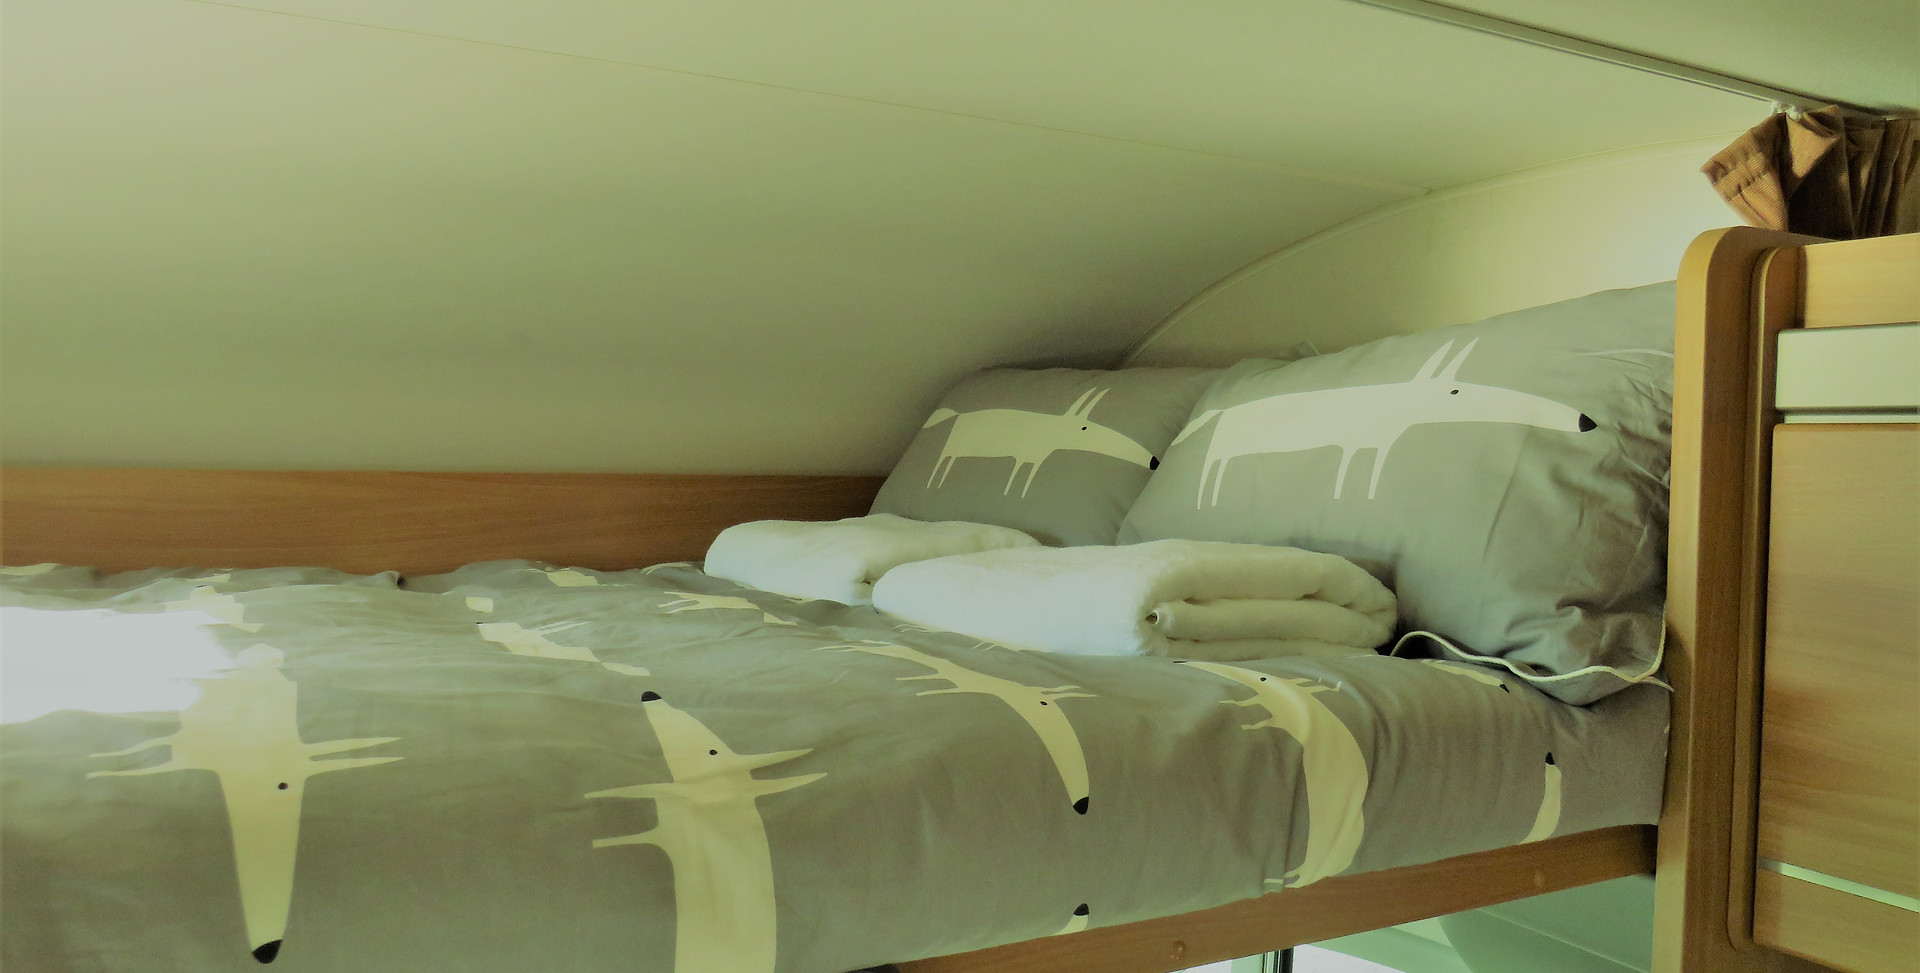 Over cab bed.